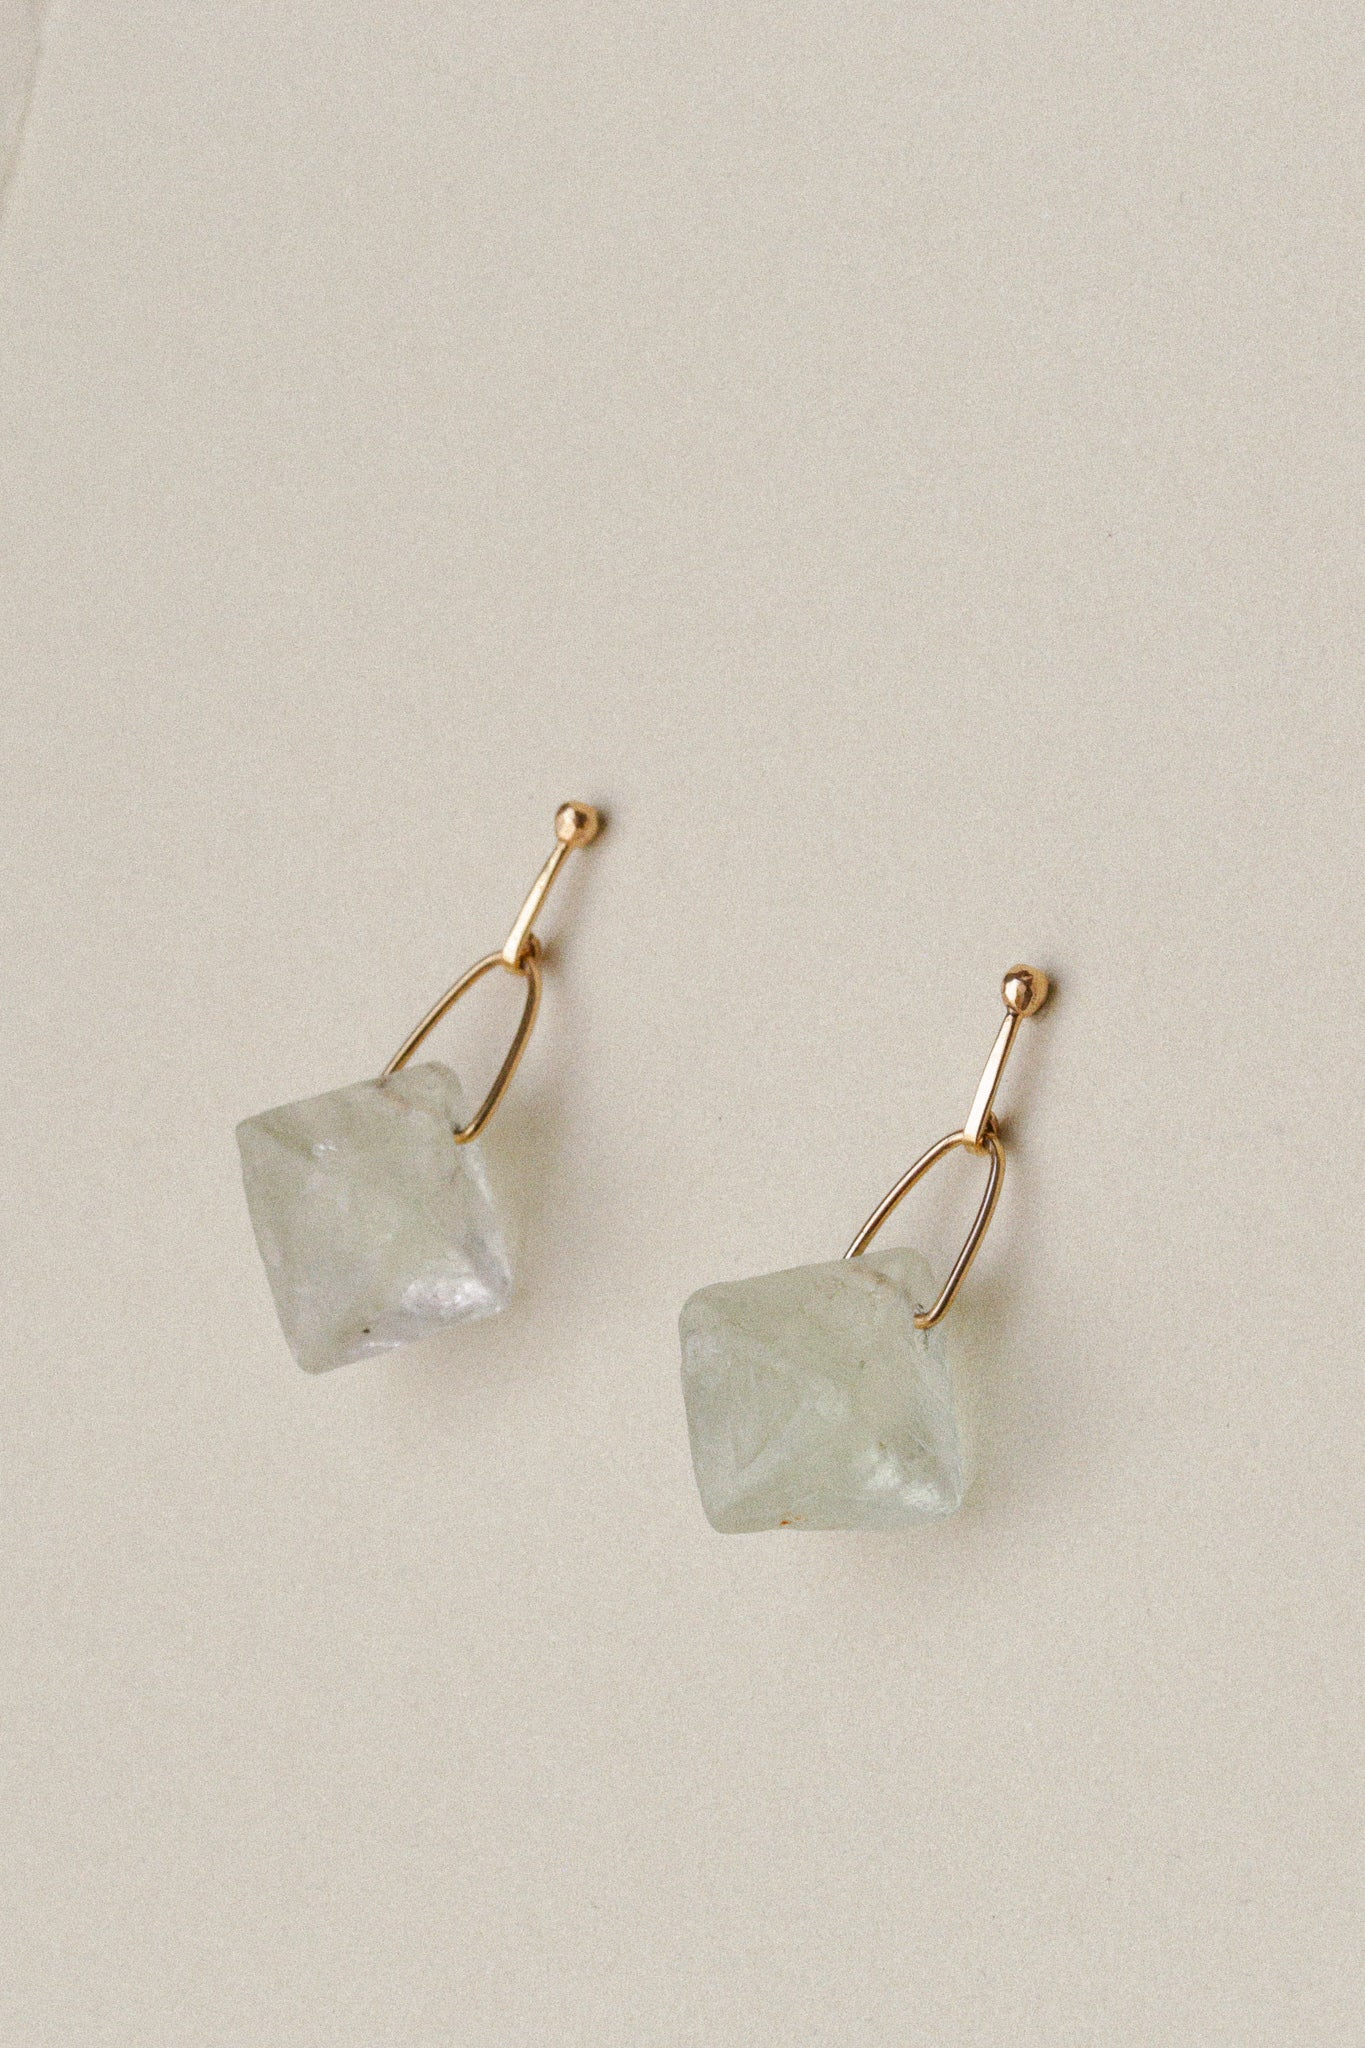 Fluorite Prism Earrings